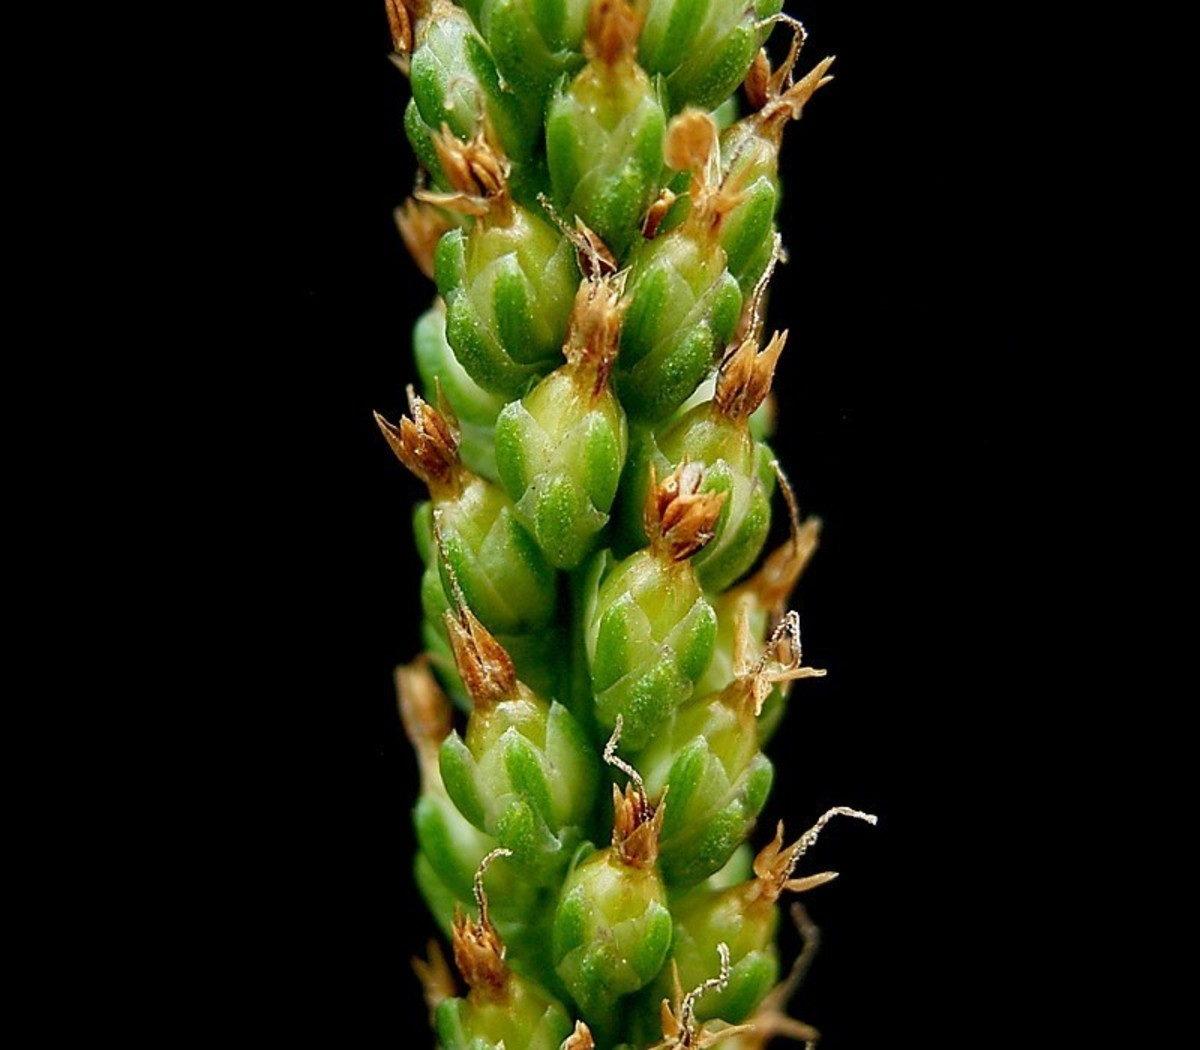 The seeds located at the top of the stalk are a great source of fiber!